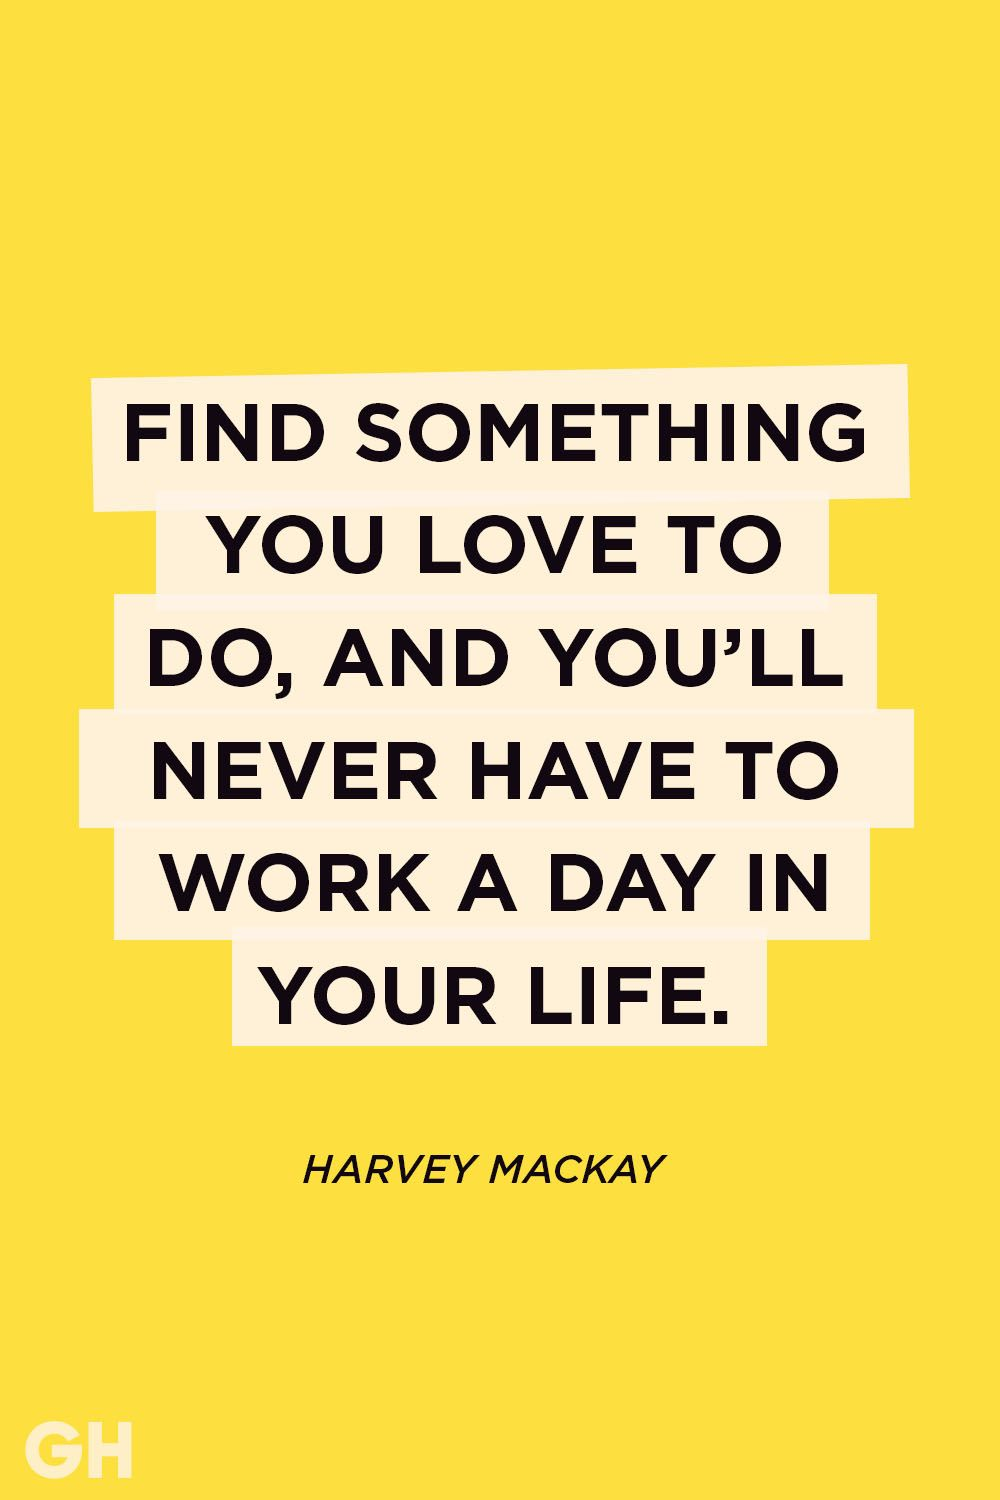 Labor Day Quotes 15 Happy Labor Day Quotes   Sayings About Hard Work Labor Day Quotes